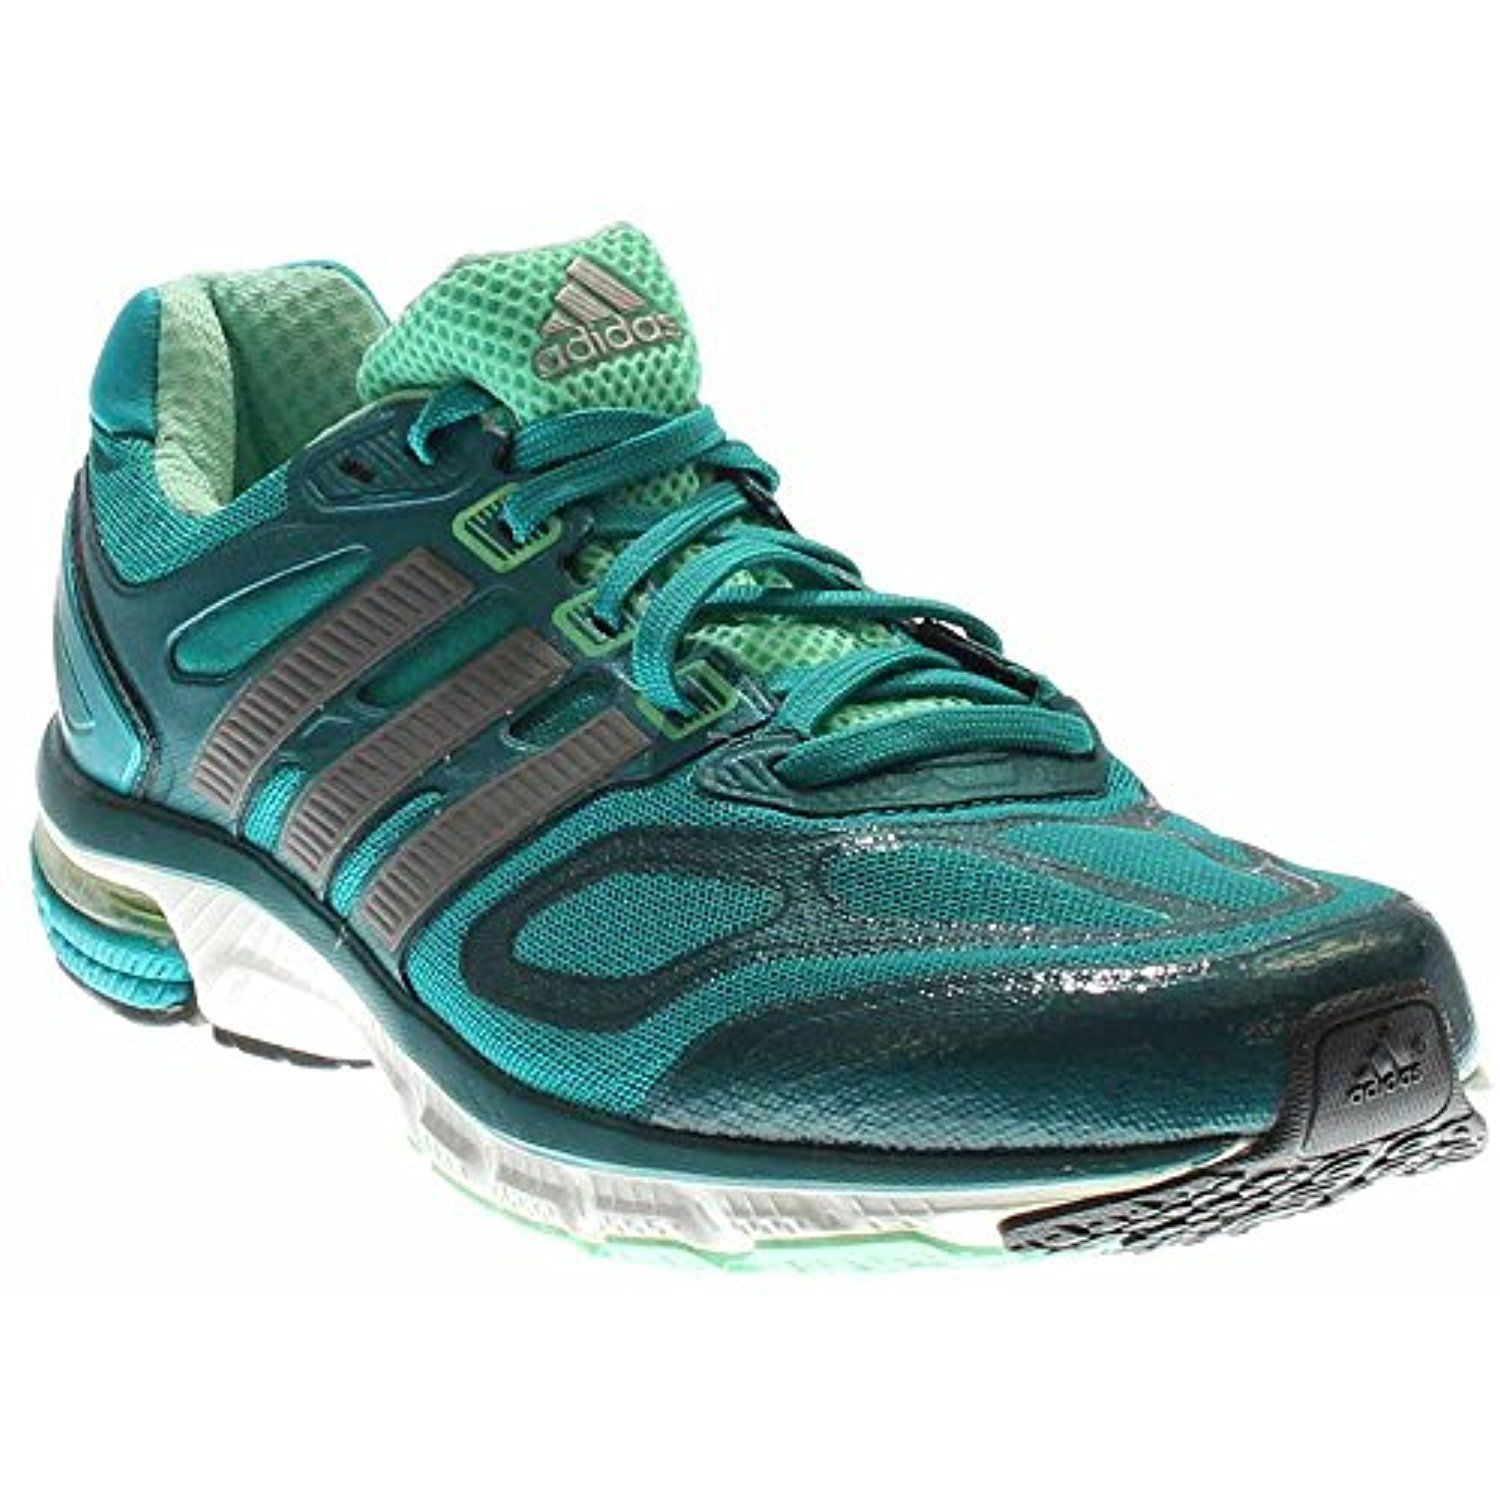 Supernova Sequence 6 Neo Iron Womens Running Shoes